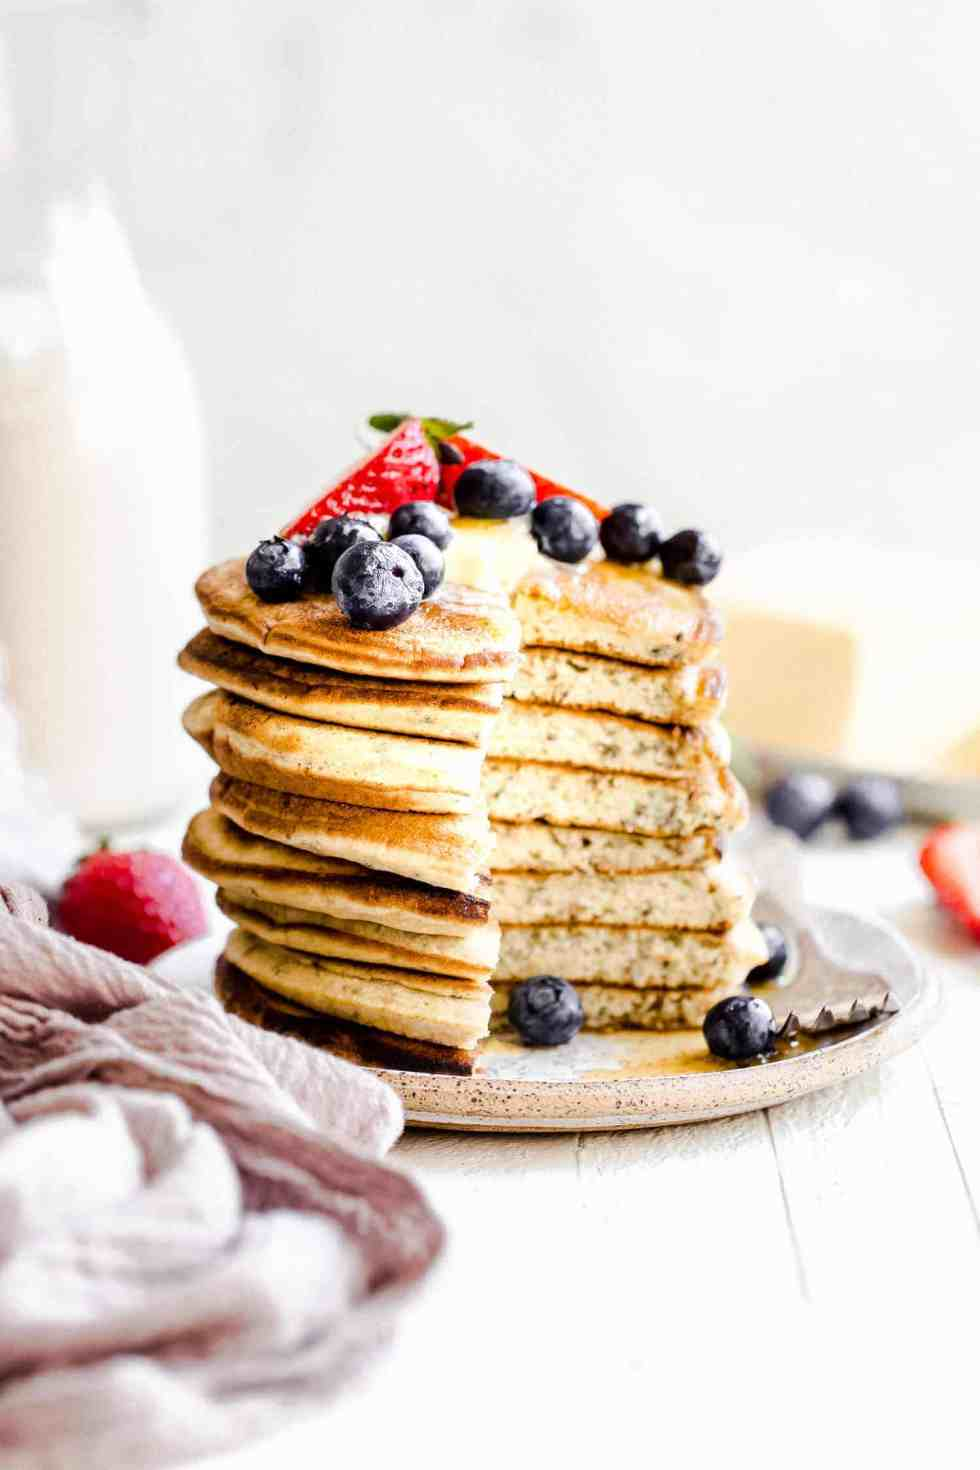 stack of paleo pancakes with berries on top